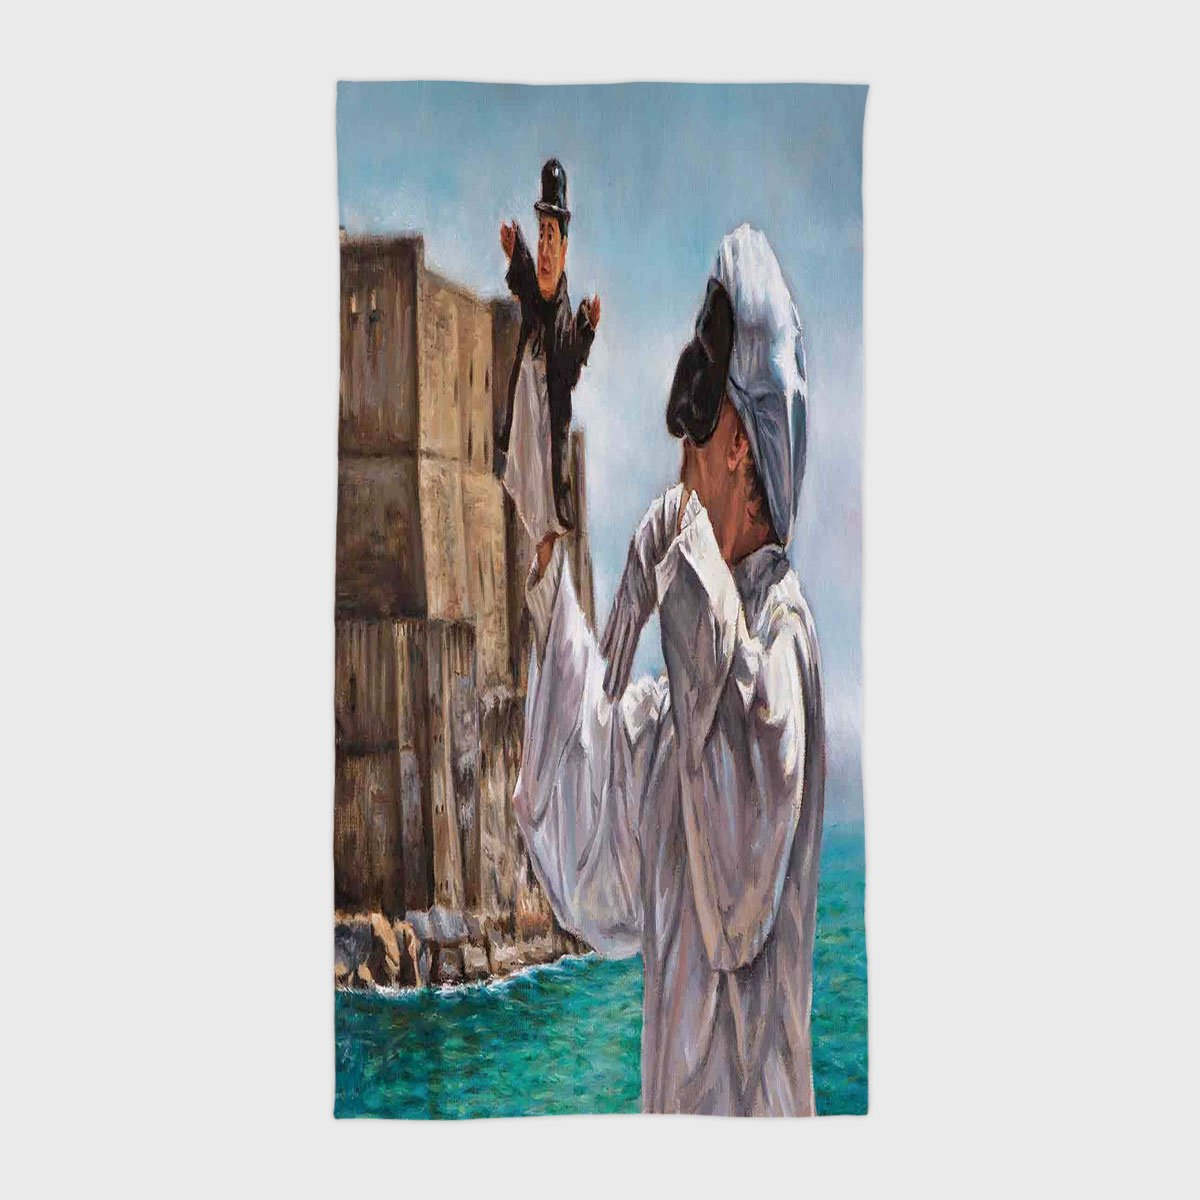 Cotton Microfiber Hotel SPA Beach Pool Bath Hand Towel,Country Decor,Painting of Pulcinella by the Old Castle Classical Traditional Comedy Character Art,Grey Blue Beige,for Kids, Teens, and Adults by iPrint (Image #1)